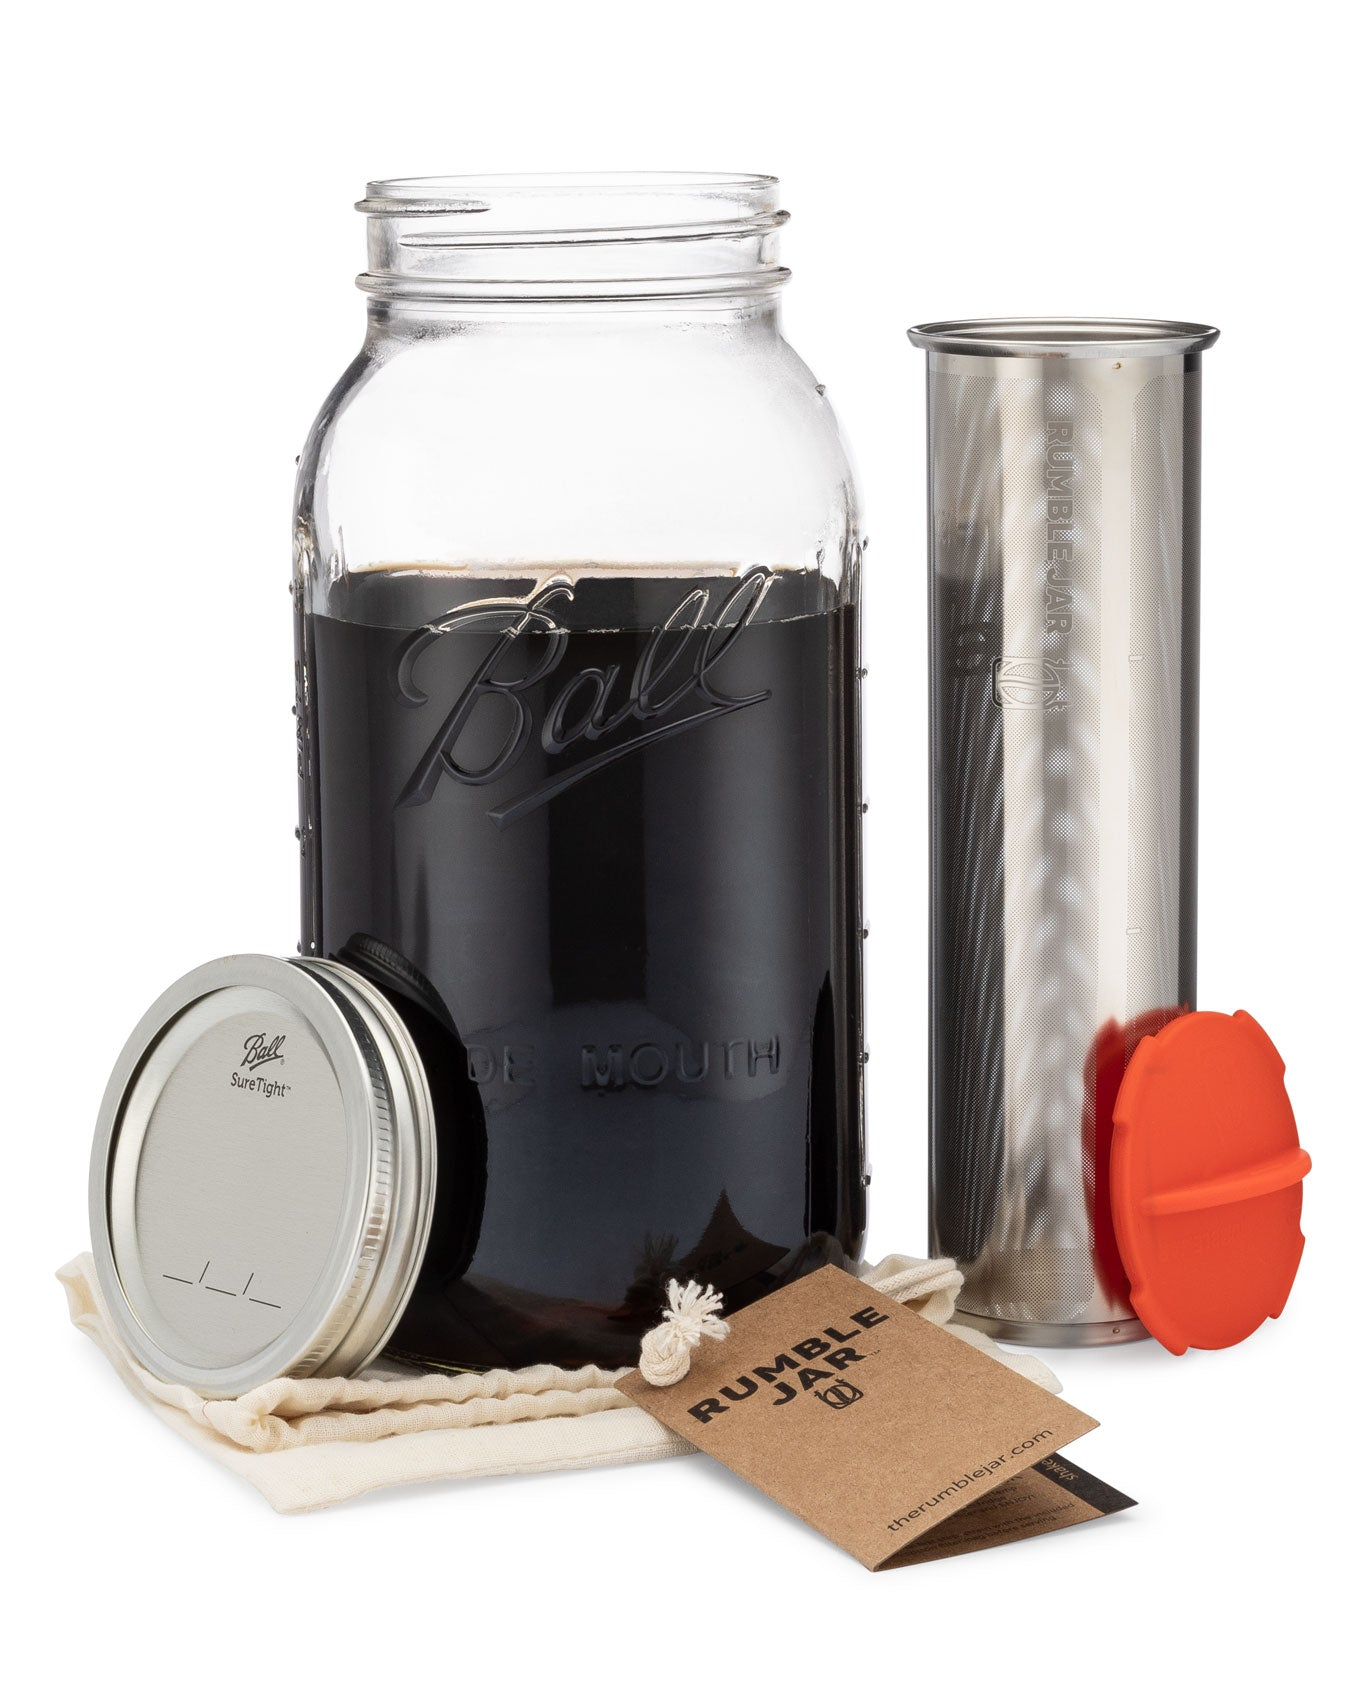 Rumble Jar half gallon 64 ounce cold brew coffee filter with orangey-red cap cotton filter sock and hangtag next to a Mason jar